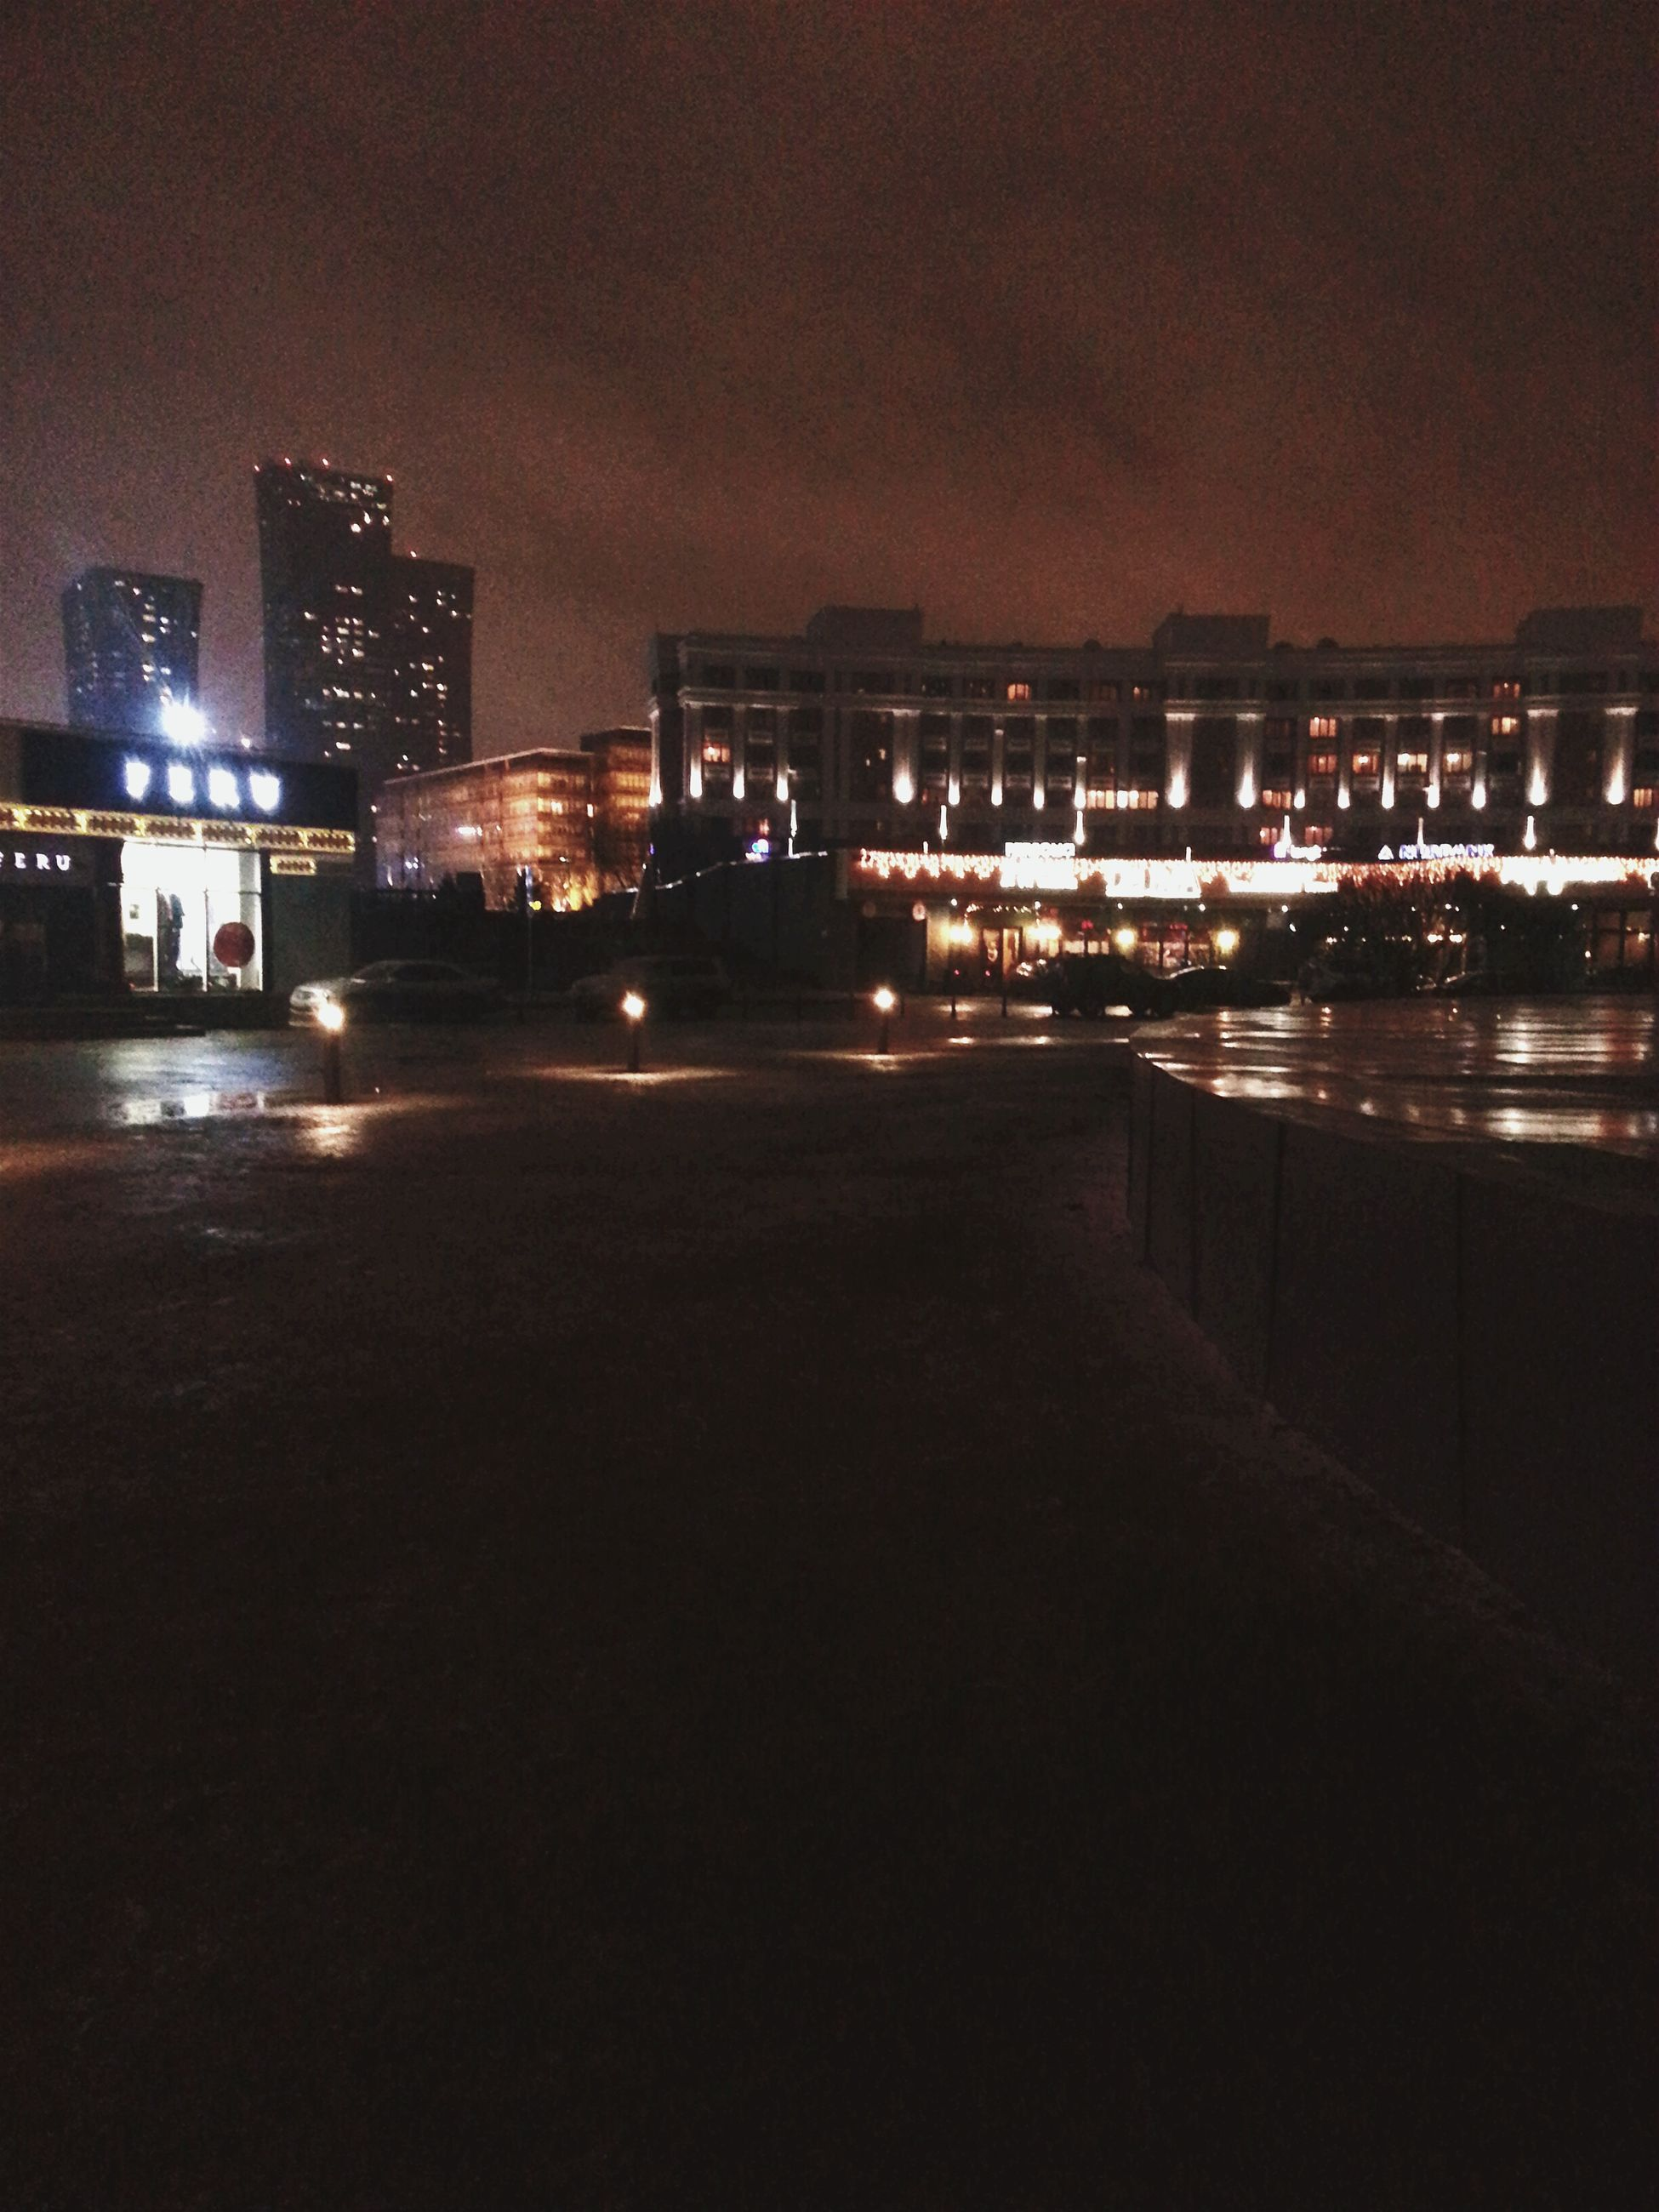 illuminated, night, building exterior, architecture, city, built structure, cityscape, dark, sky, residential building, lighting equipment, city life, street light, skyscraper, street, building, light - natural phenomenon, river, outdoors, residential structure